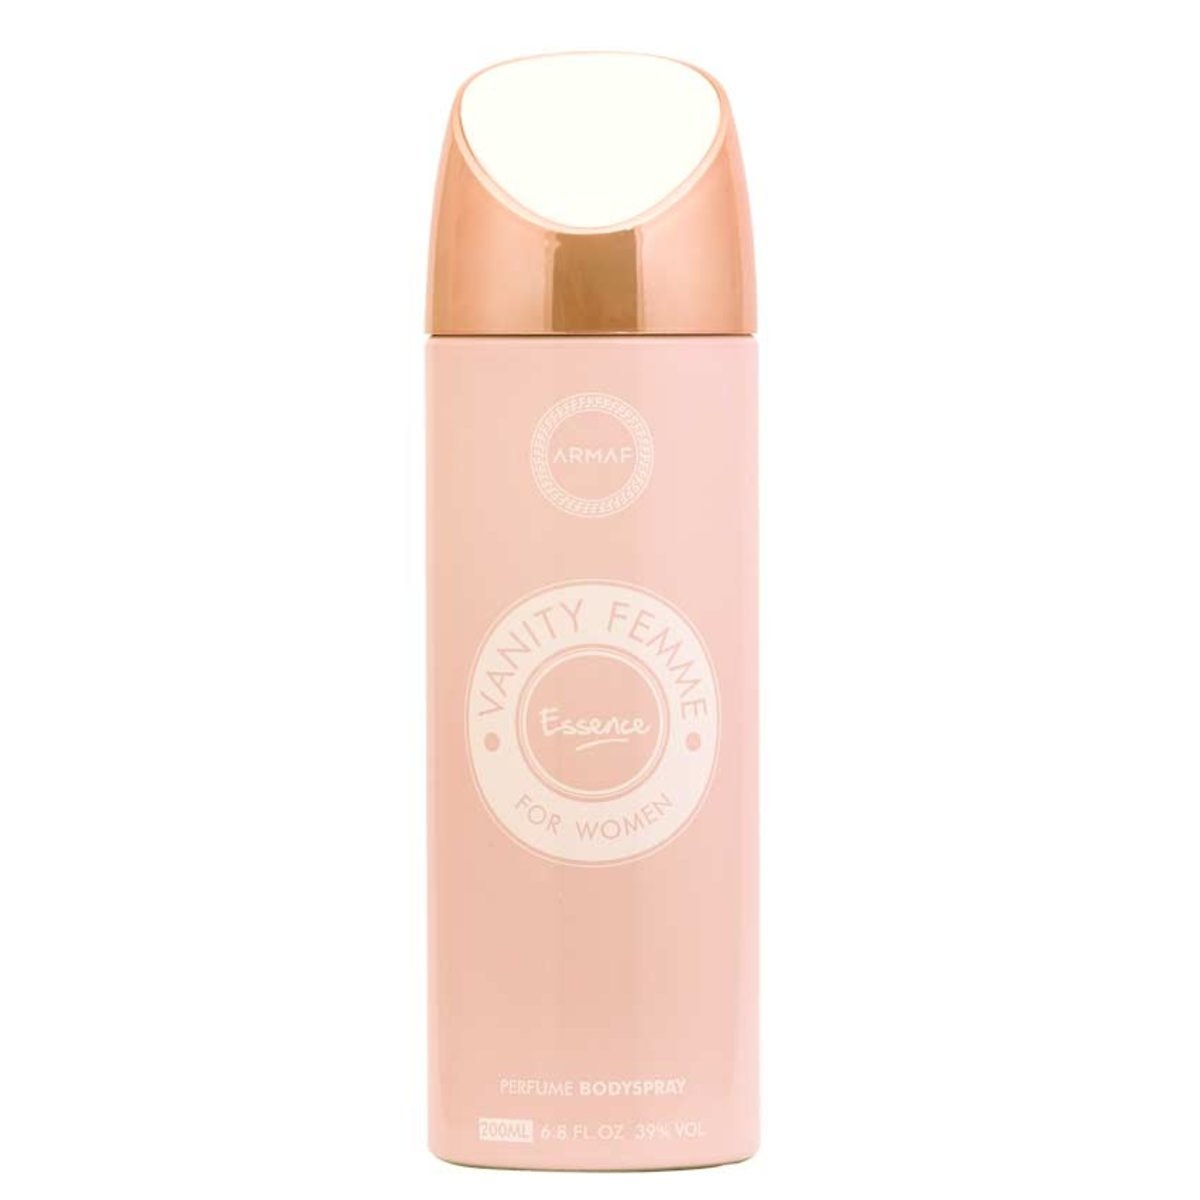 5da0f24bc8 Buy Armaf Vanity Femme Essence Perfume Body Spray For Woman 200Ml Online at  Low Prices in India - Amazon.in